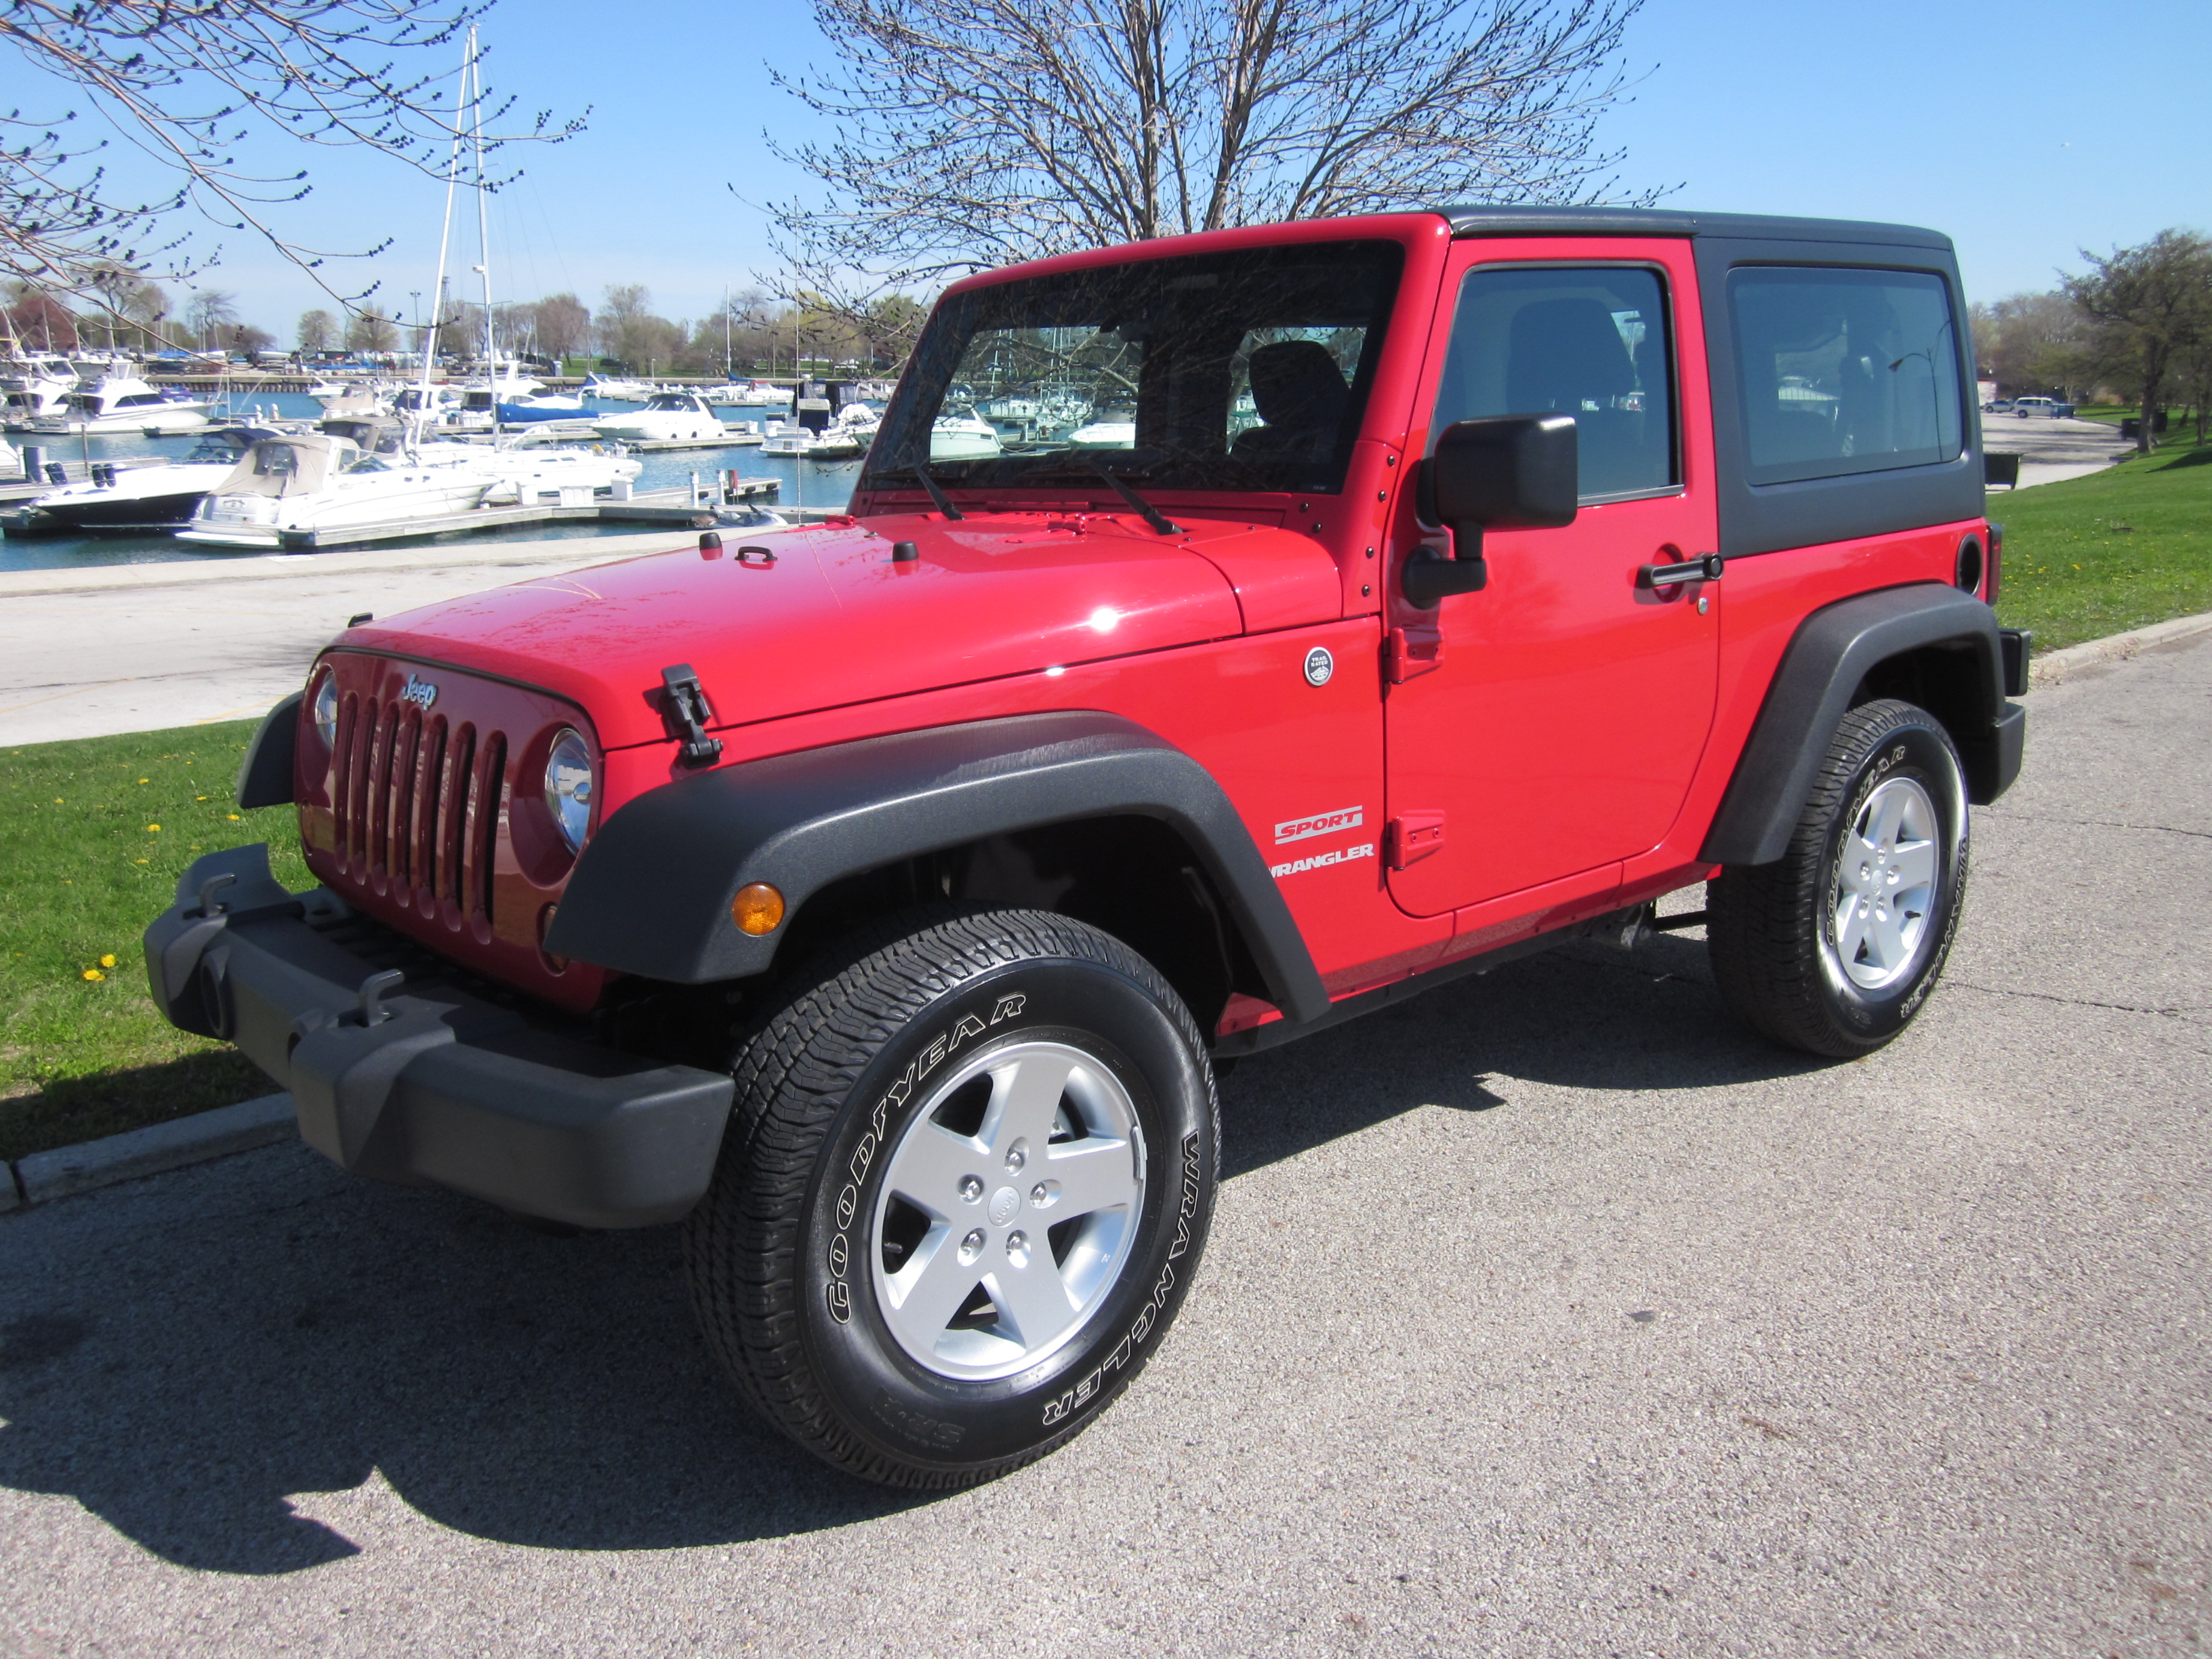 2011 and the Jeep Wrangler